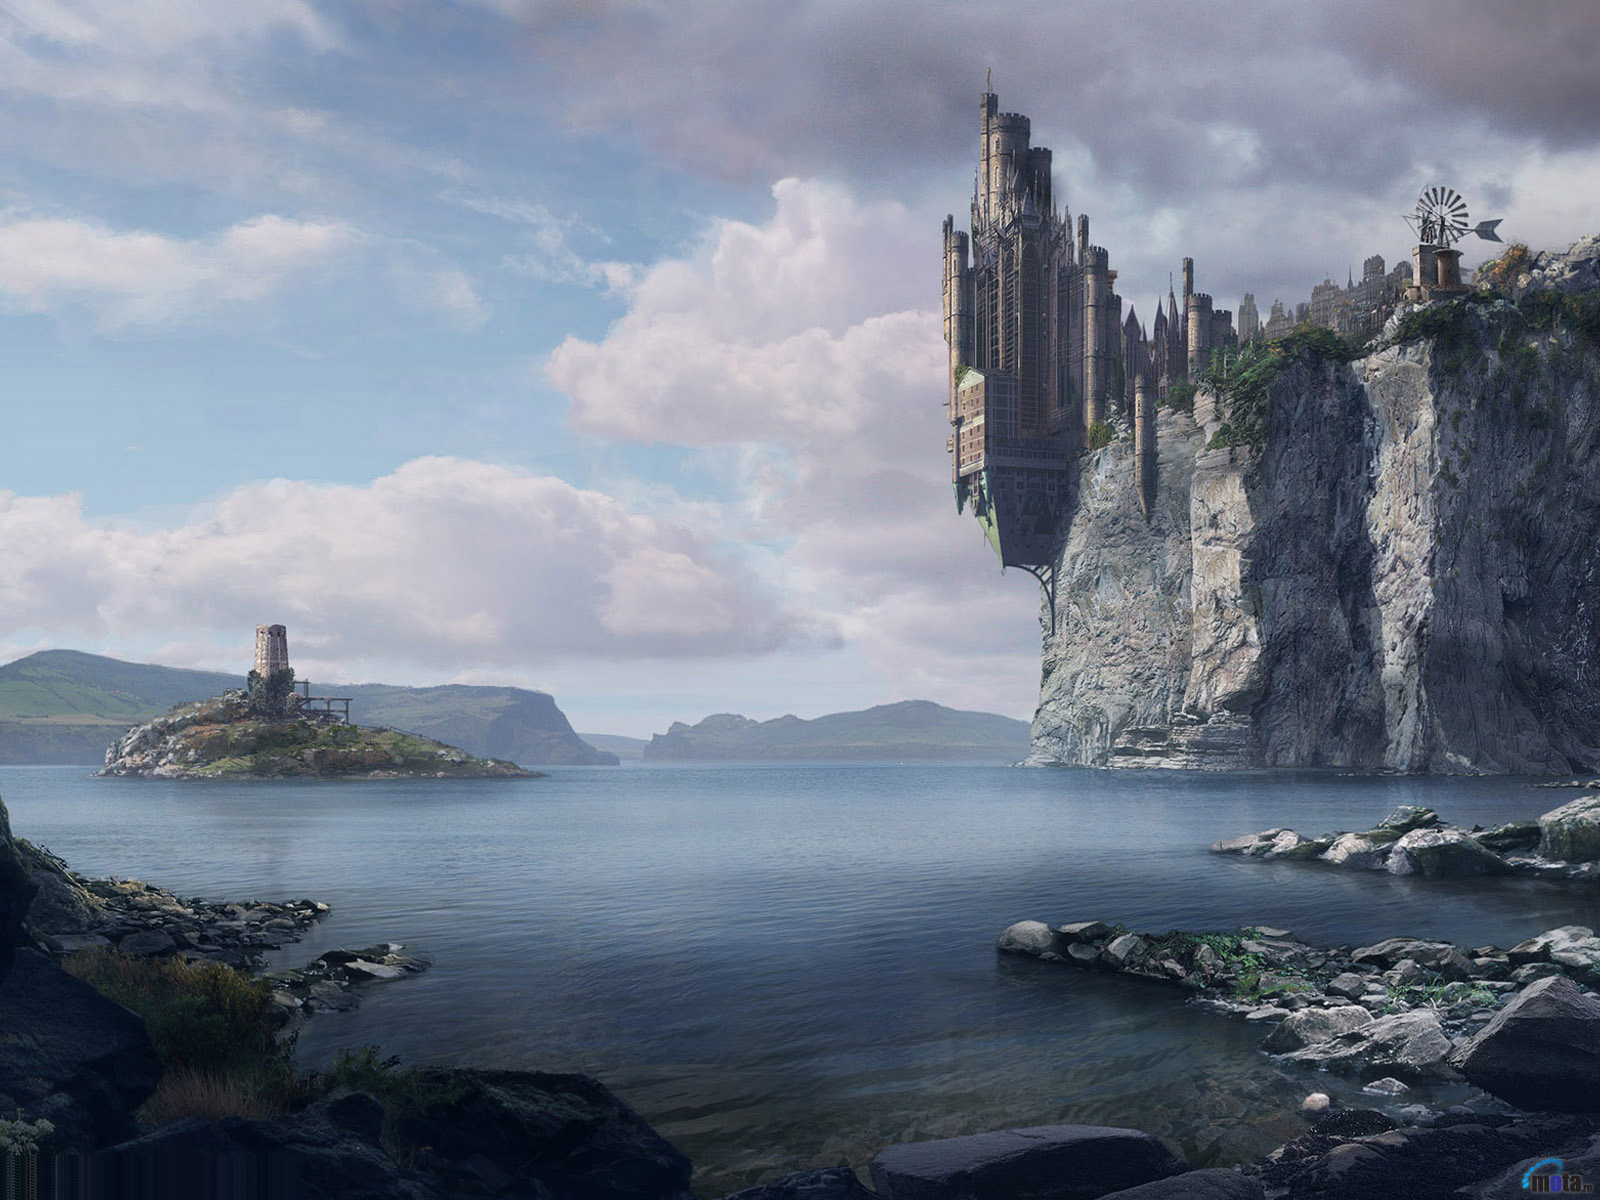 Hd Wallpapers For Desktop 3d Cool Scenery Wallpapers - Castle On A Cliff Fantasy , HD Wallpaper & Backgrounds